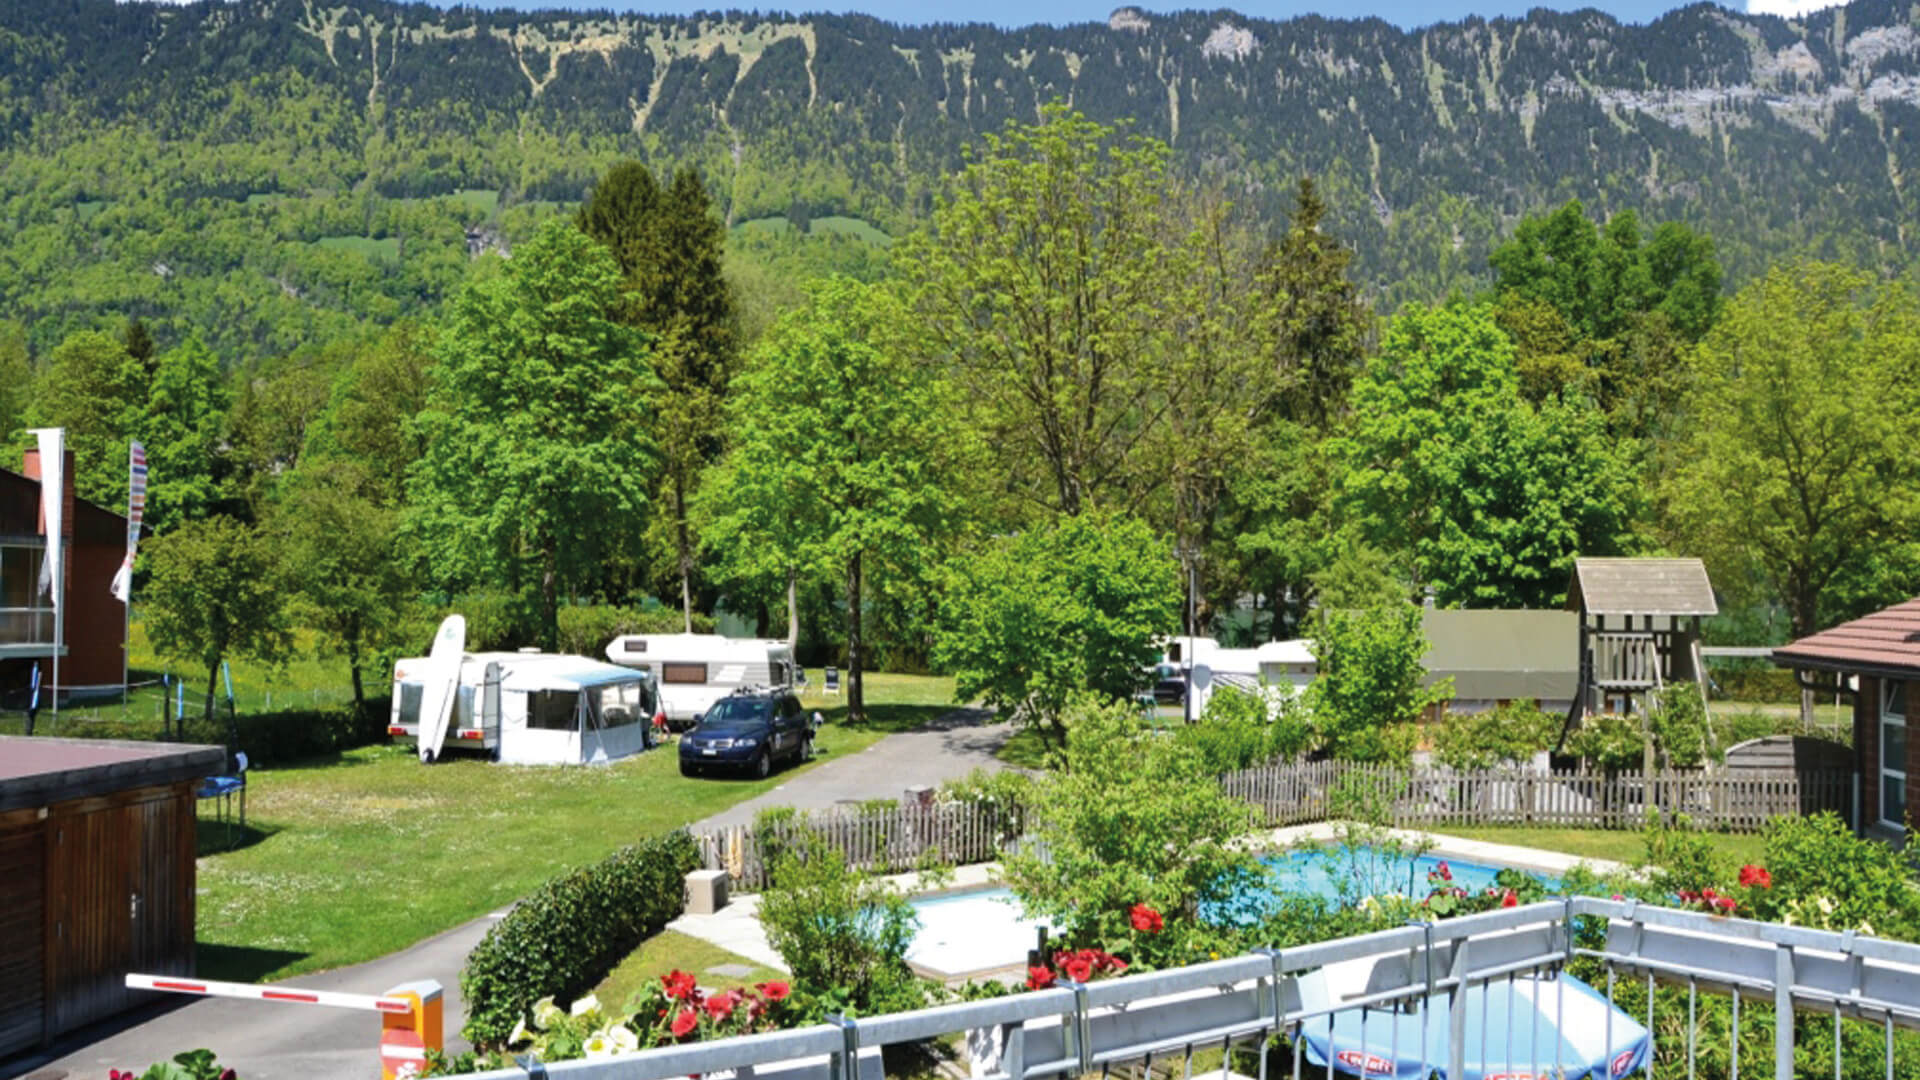 tcs-camping-cafe-seeblick-terrasse